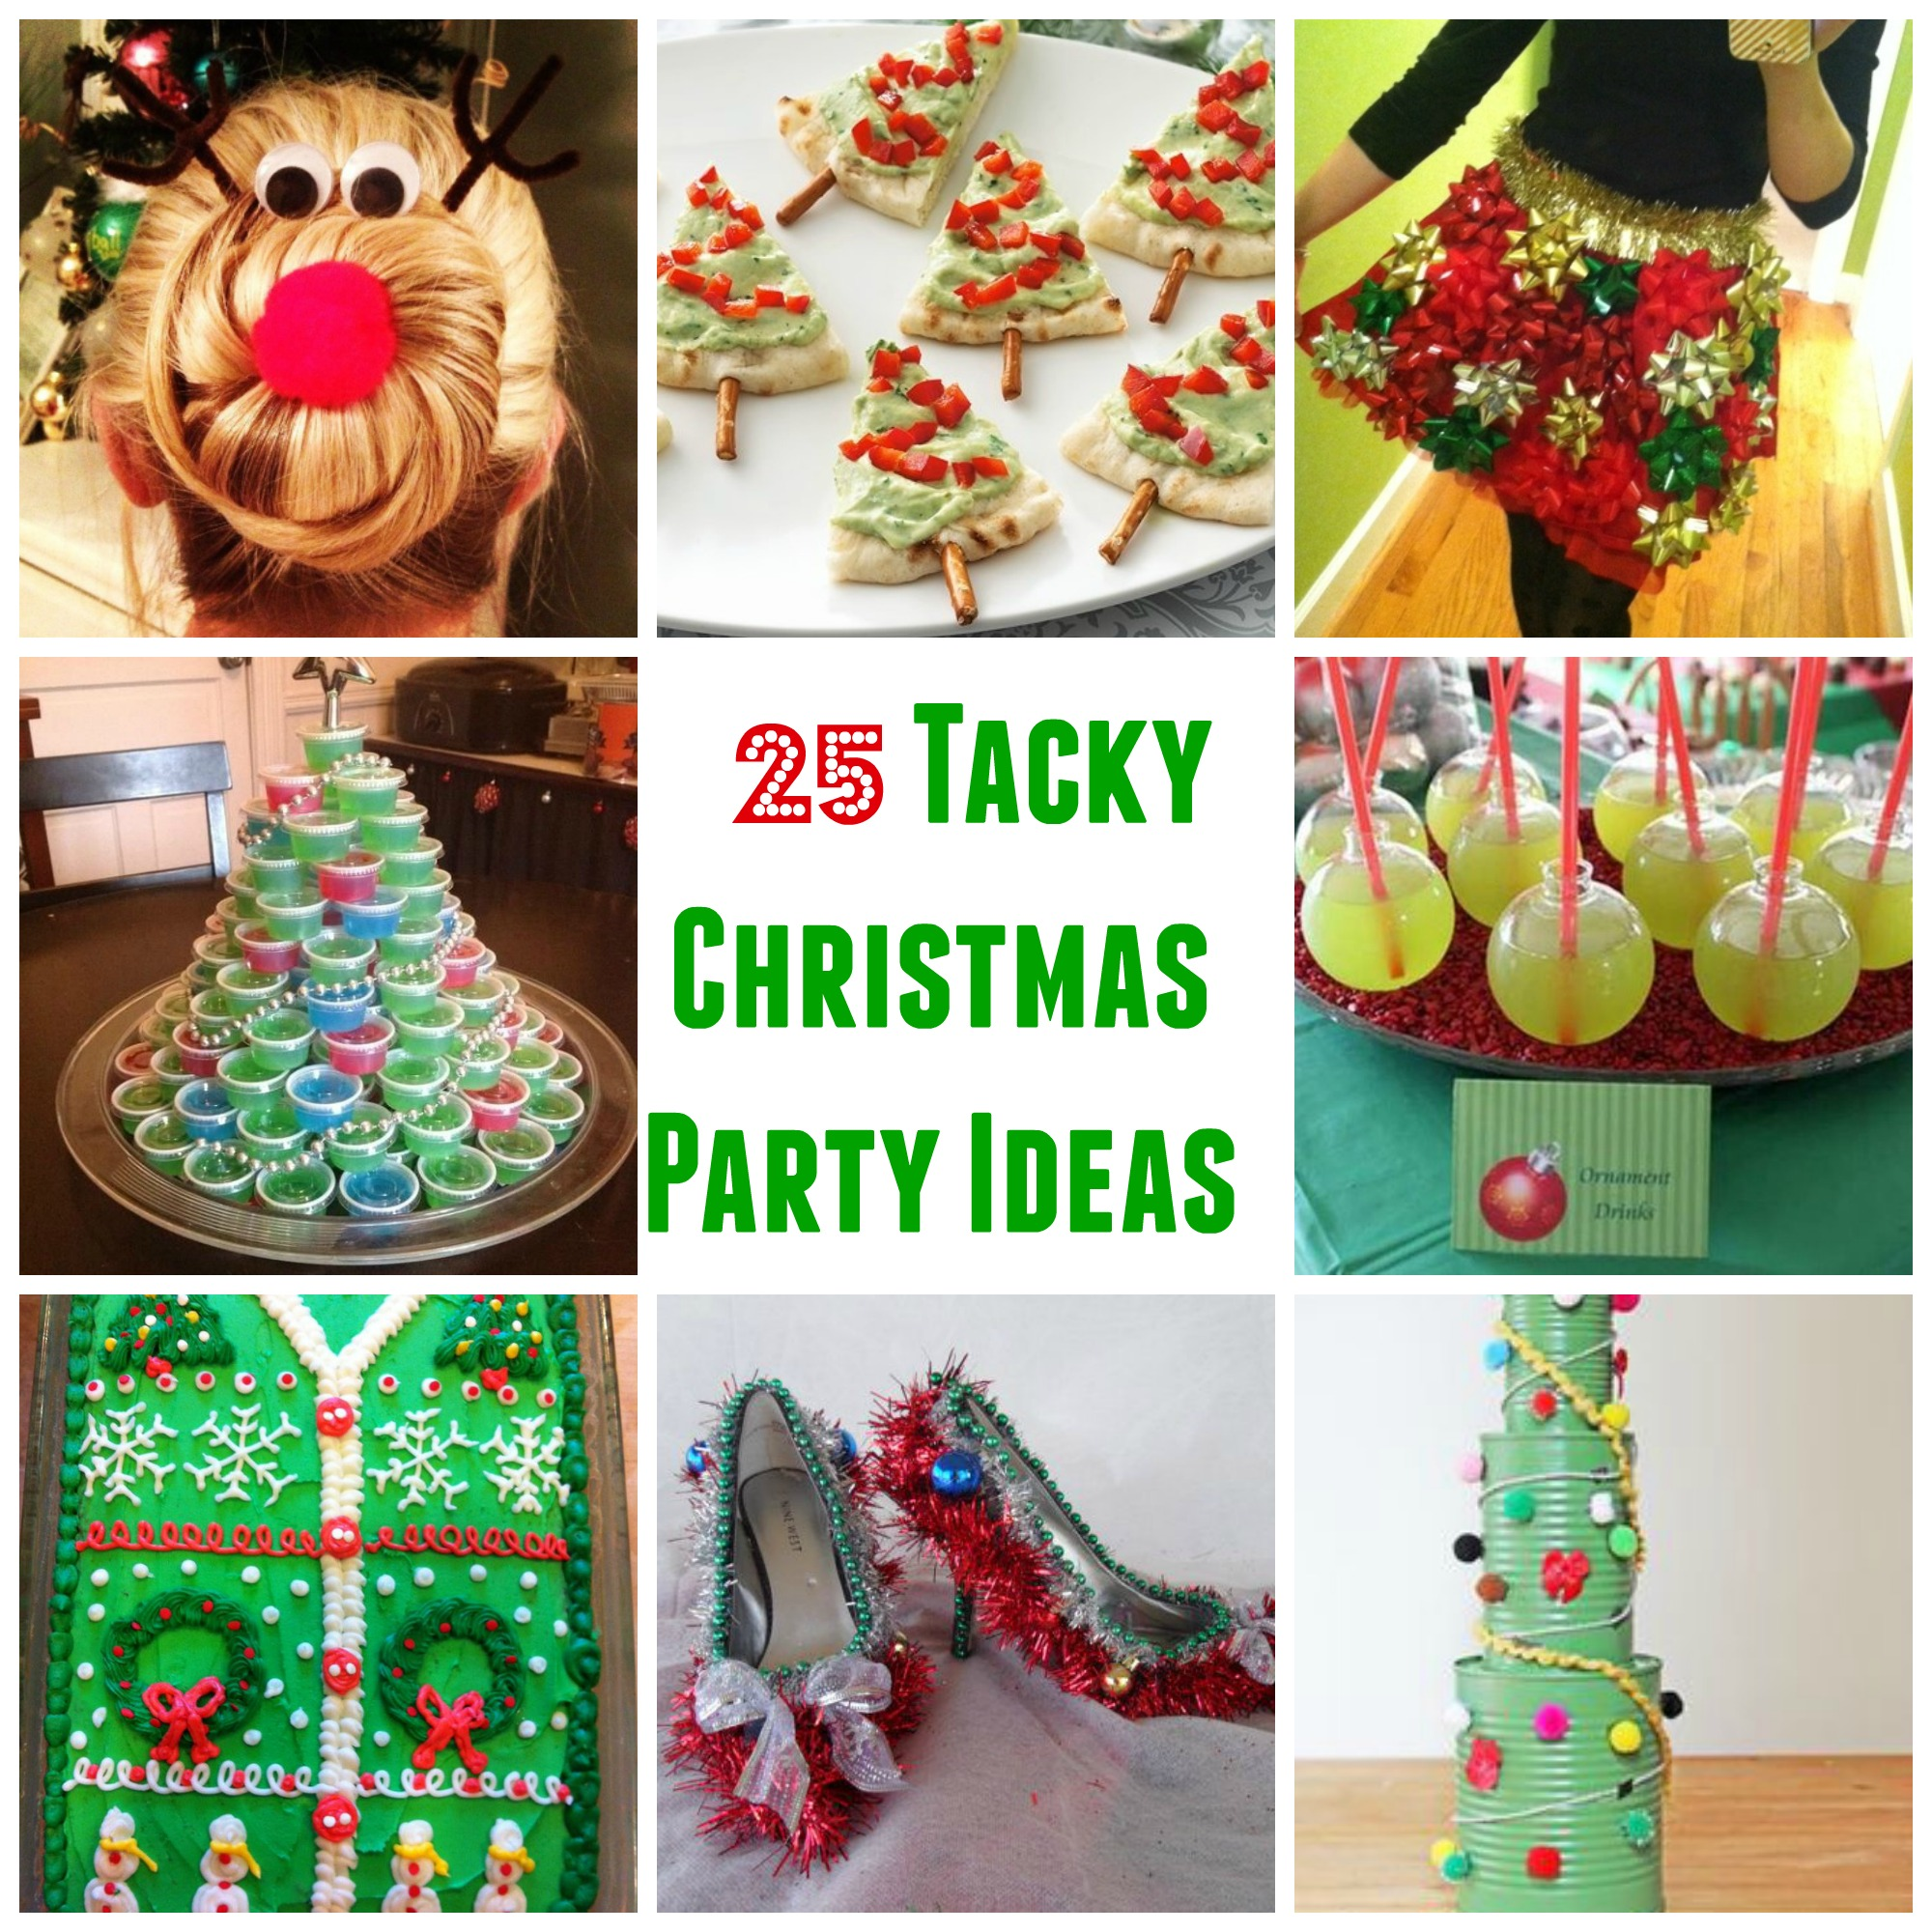 tackychristmasparty